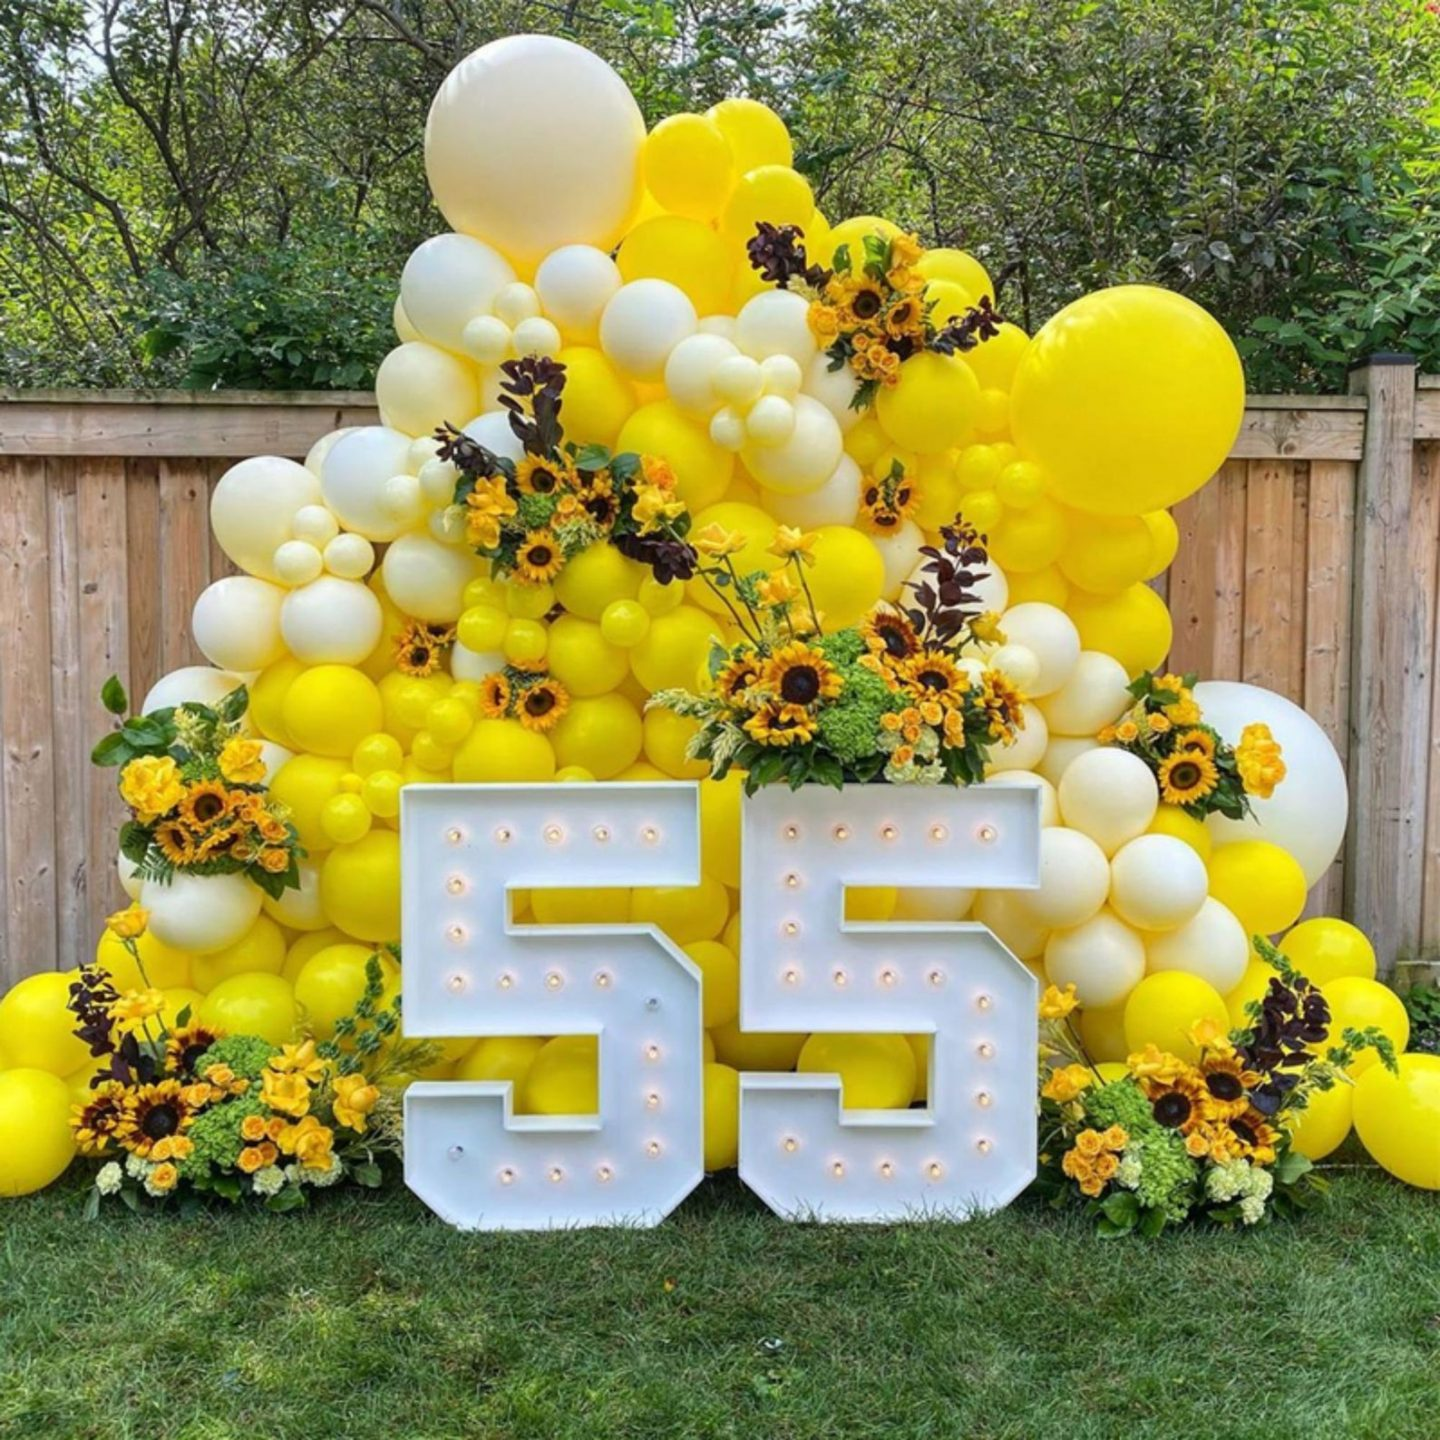 Birthday sign with fancy yellow balloons and numbers